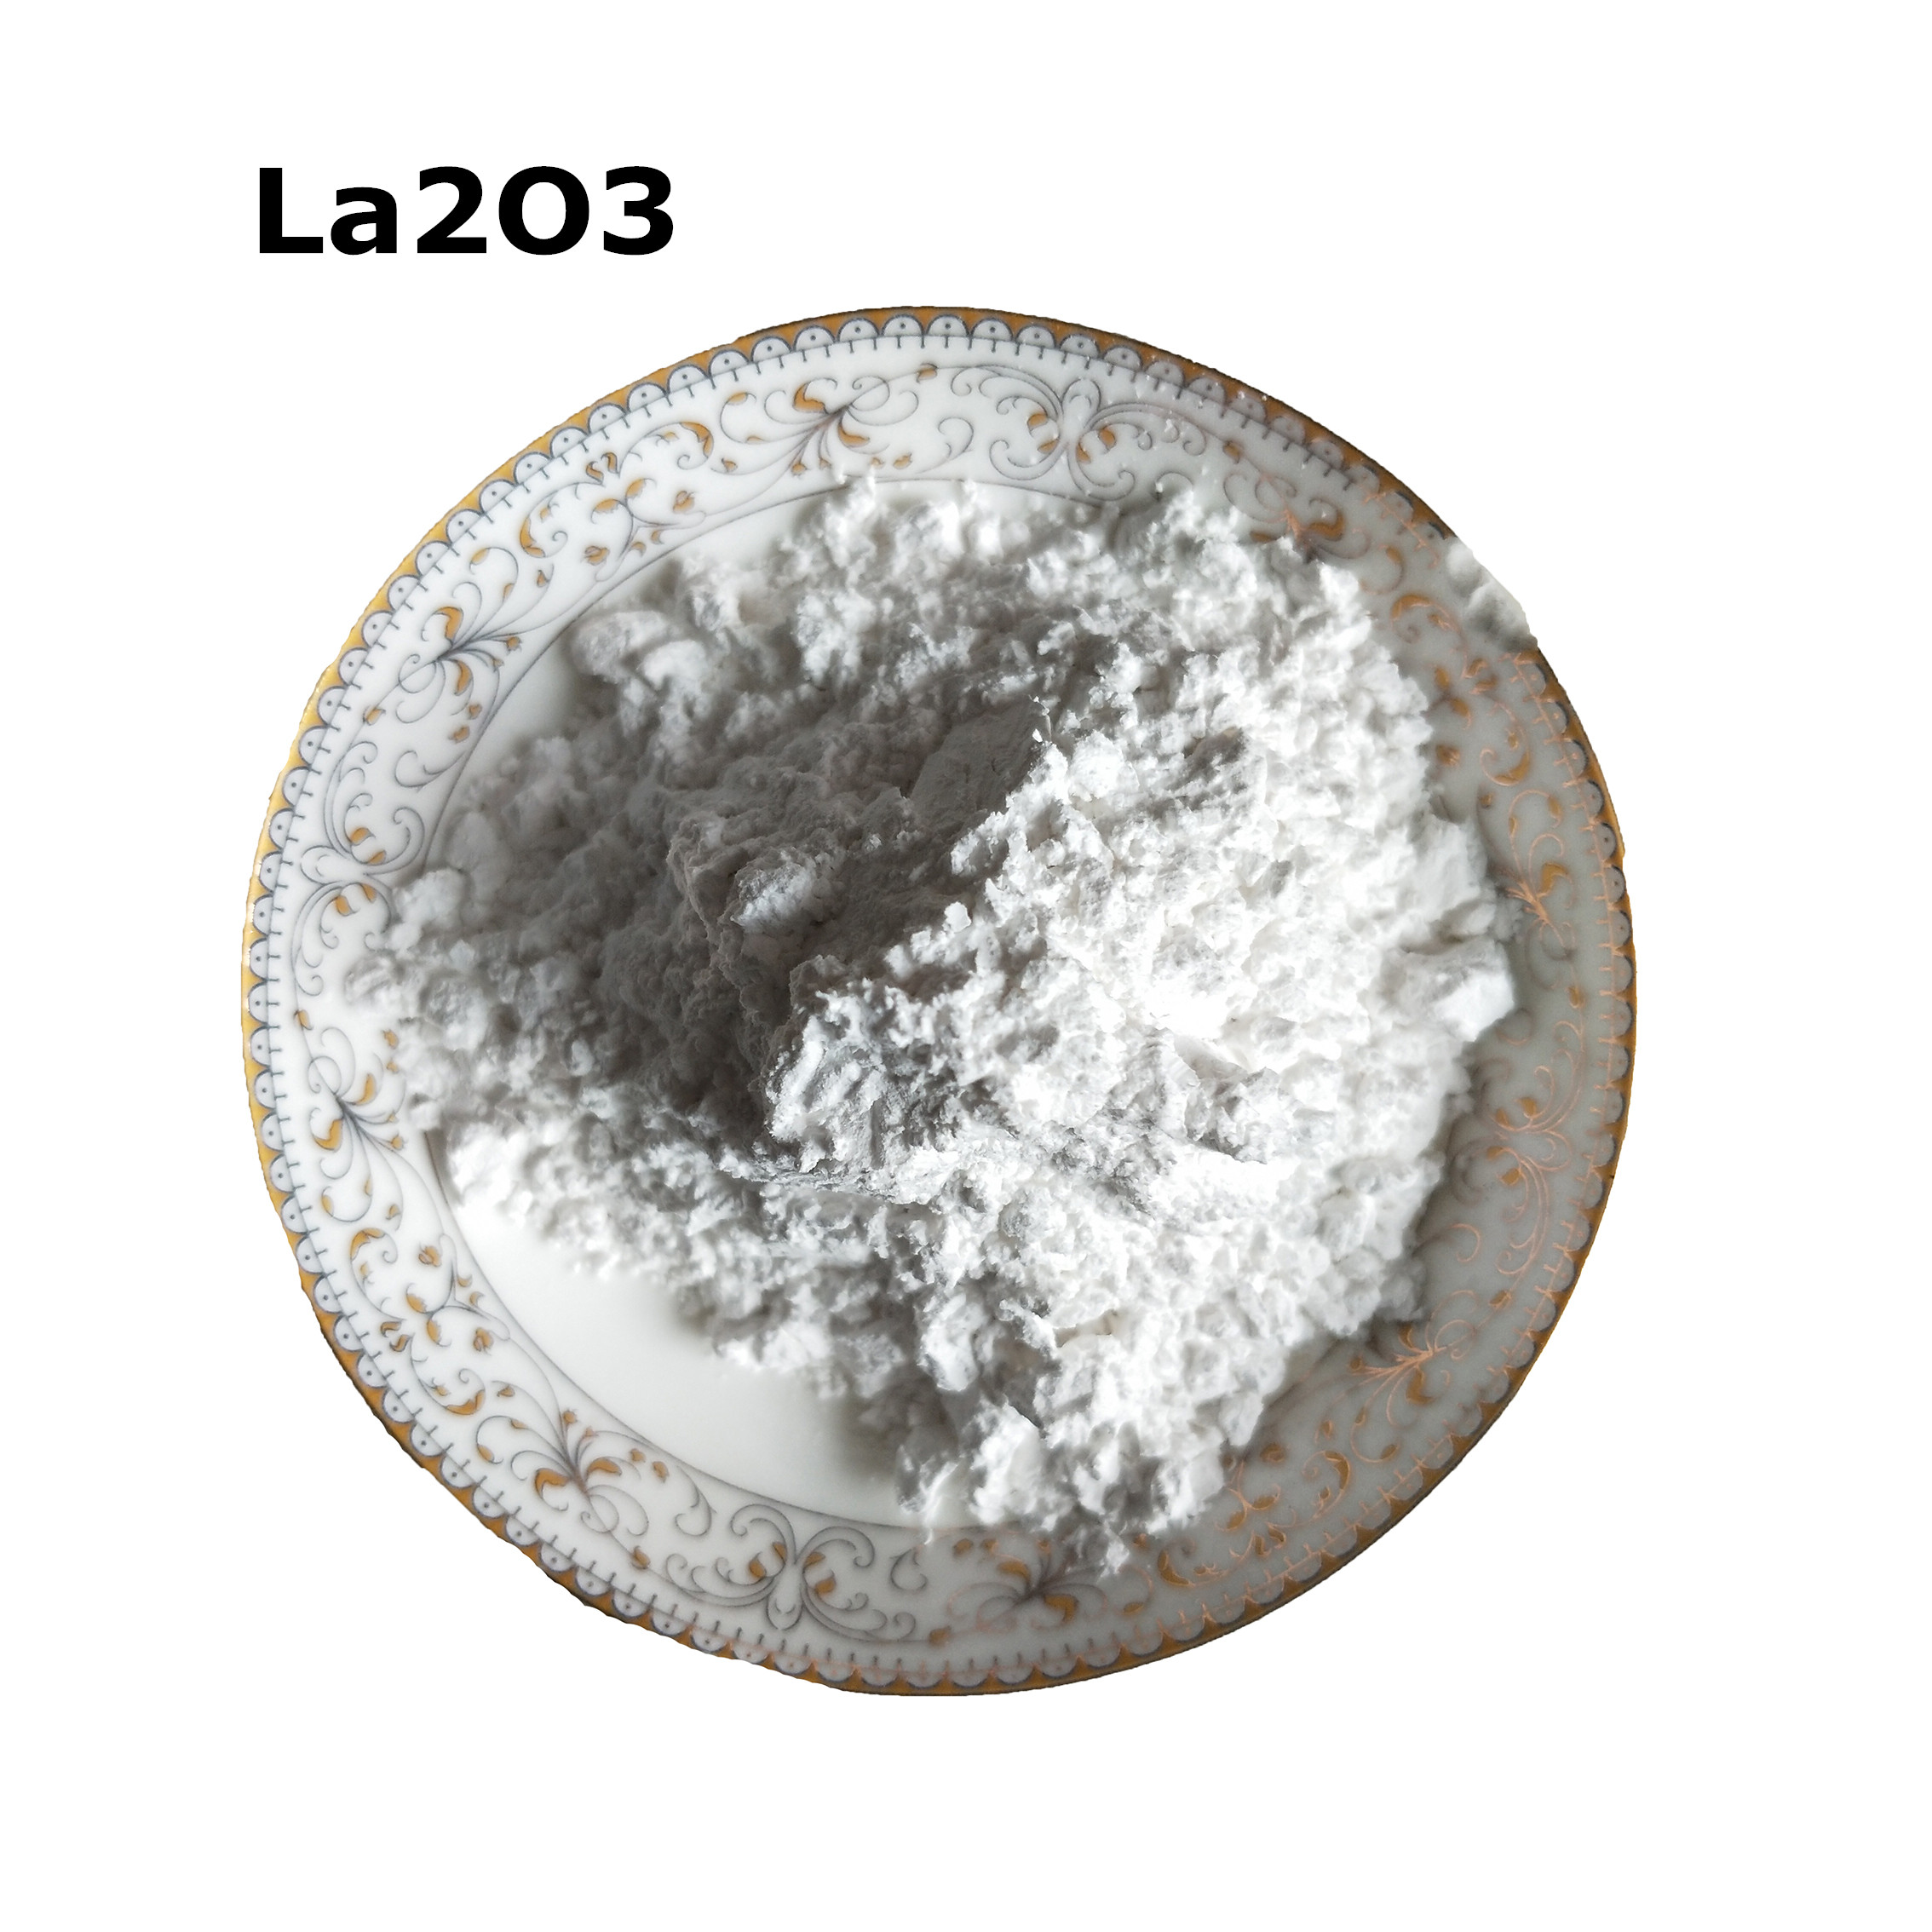 La2O3 High Purity Powder 99.9% Lanthanum Oxide For R&D Ultrafine Nano Powders About 1 Micro Meter